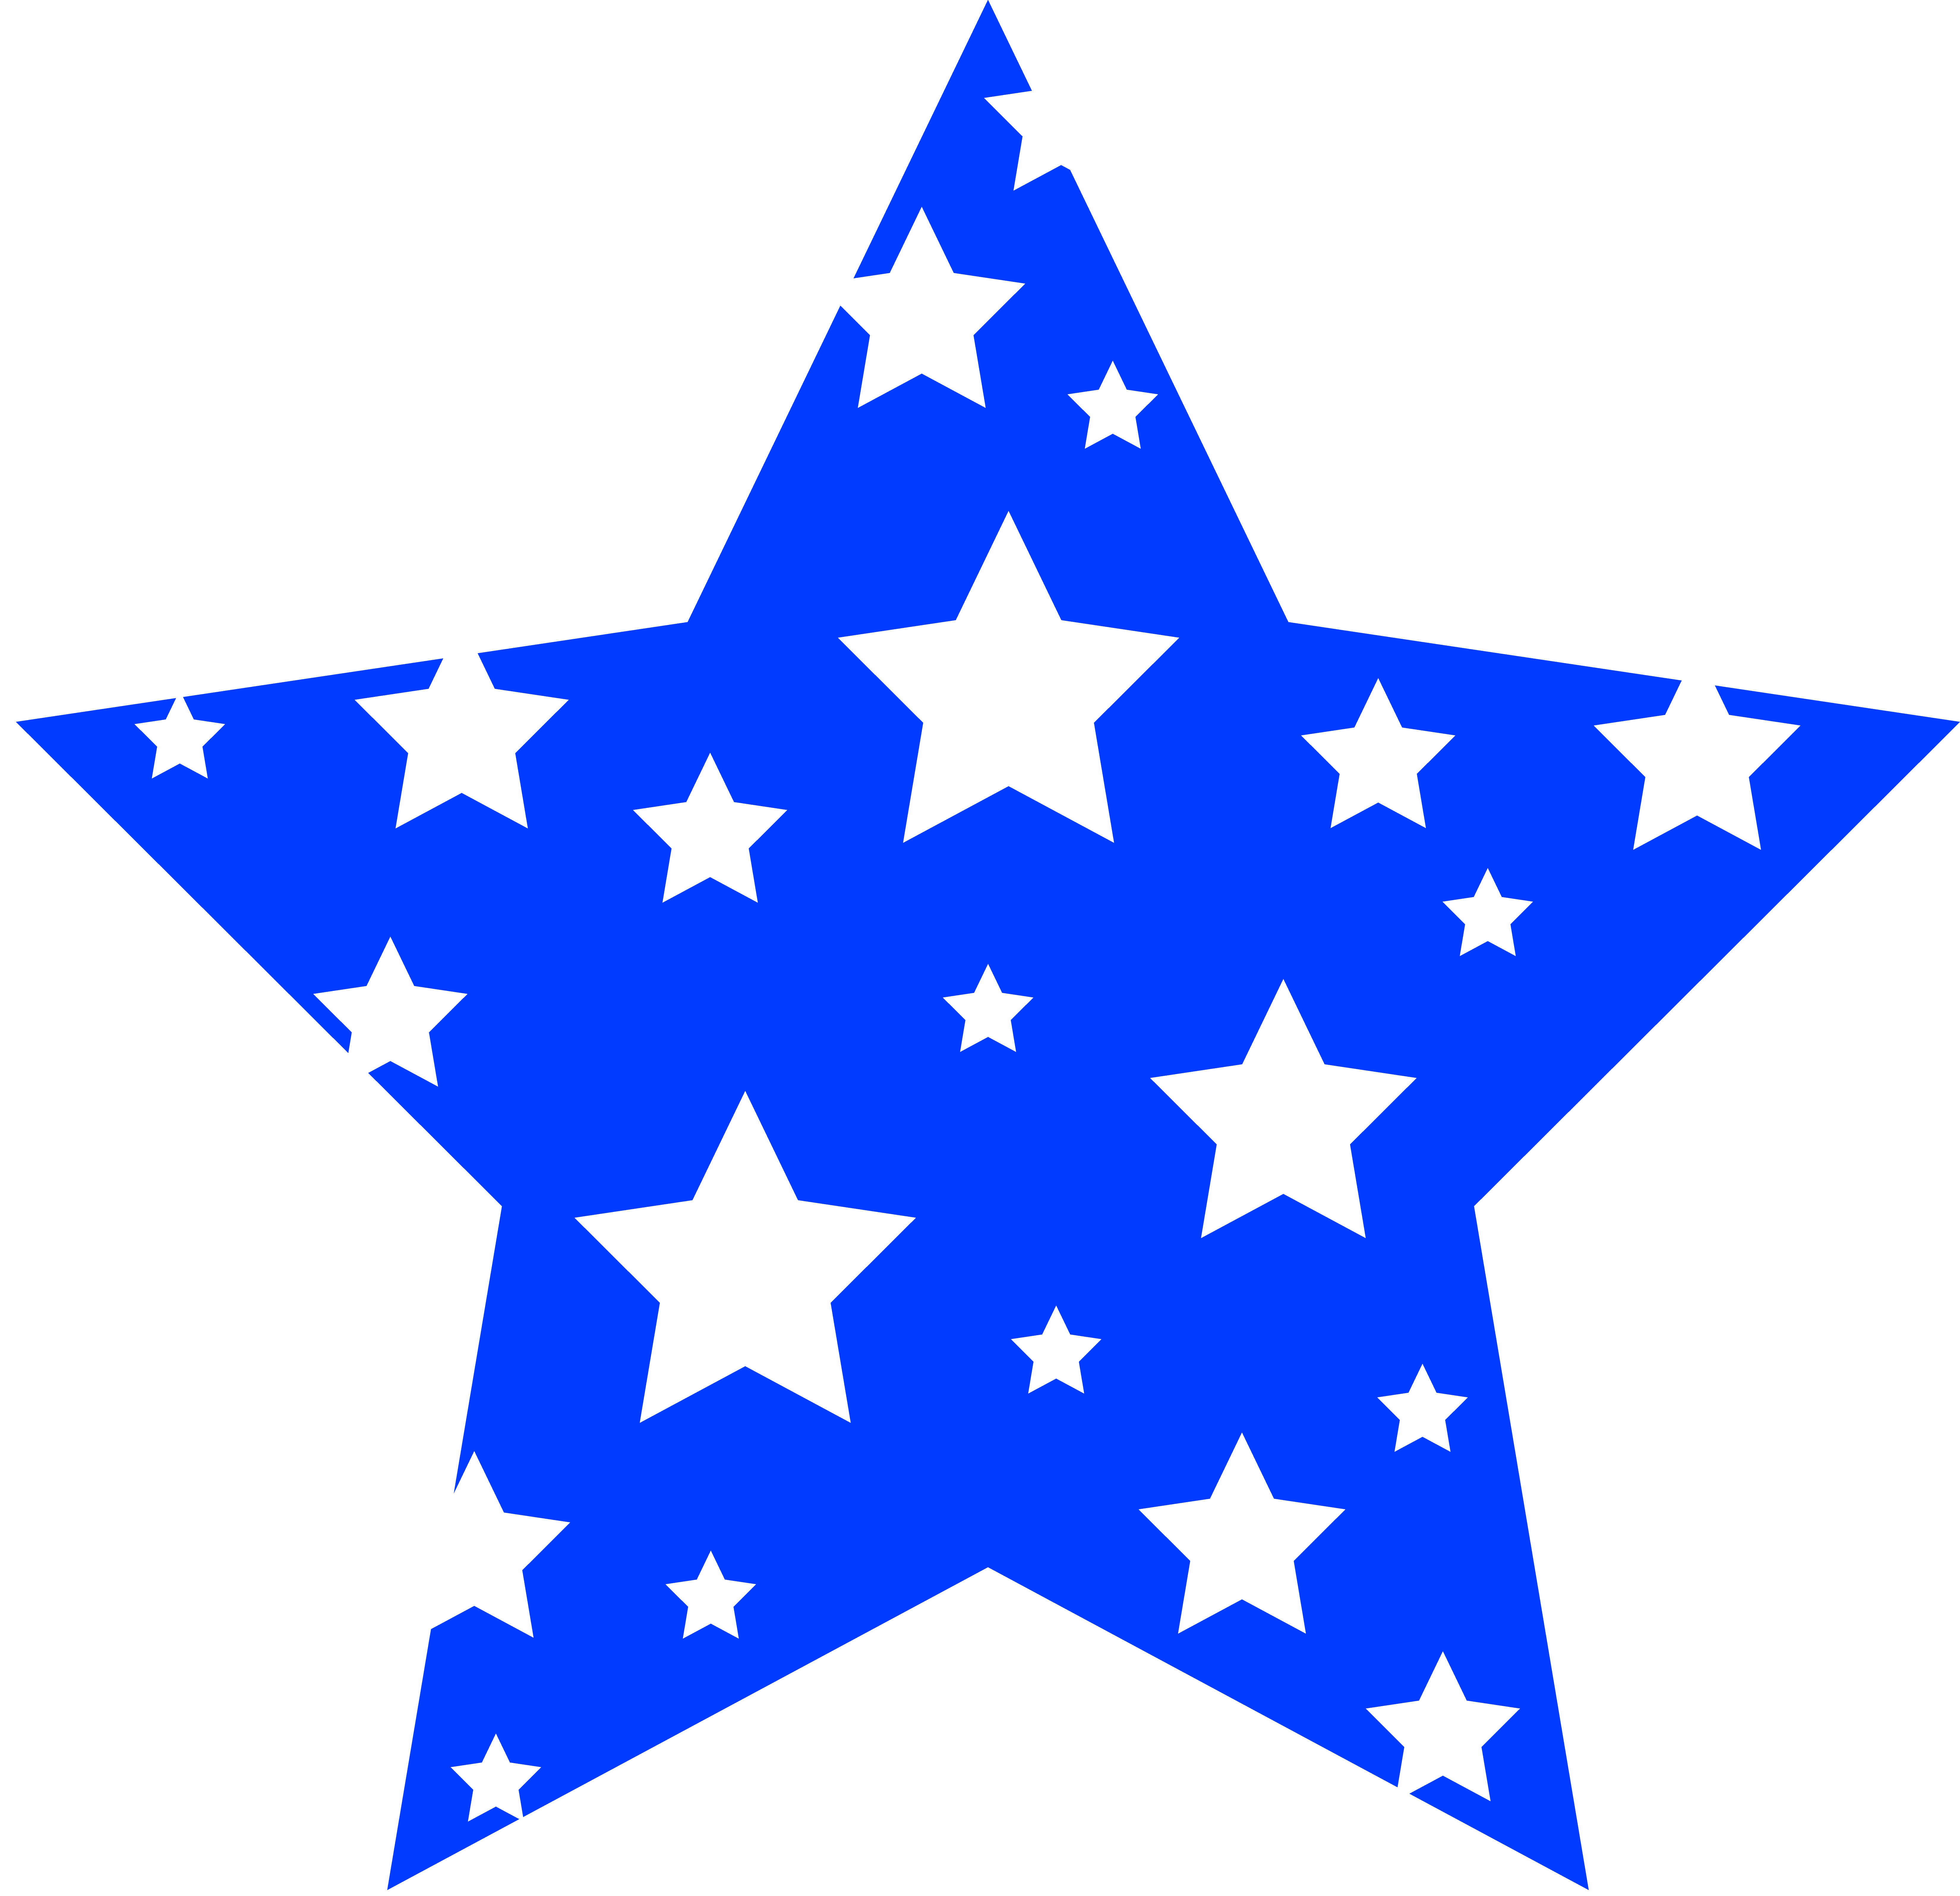 6598x6383 Blue Star Patterned With White Clipart Panda